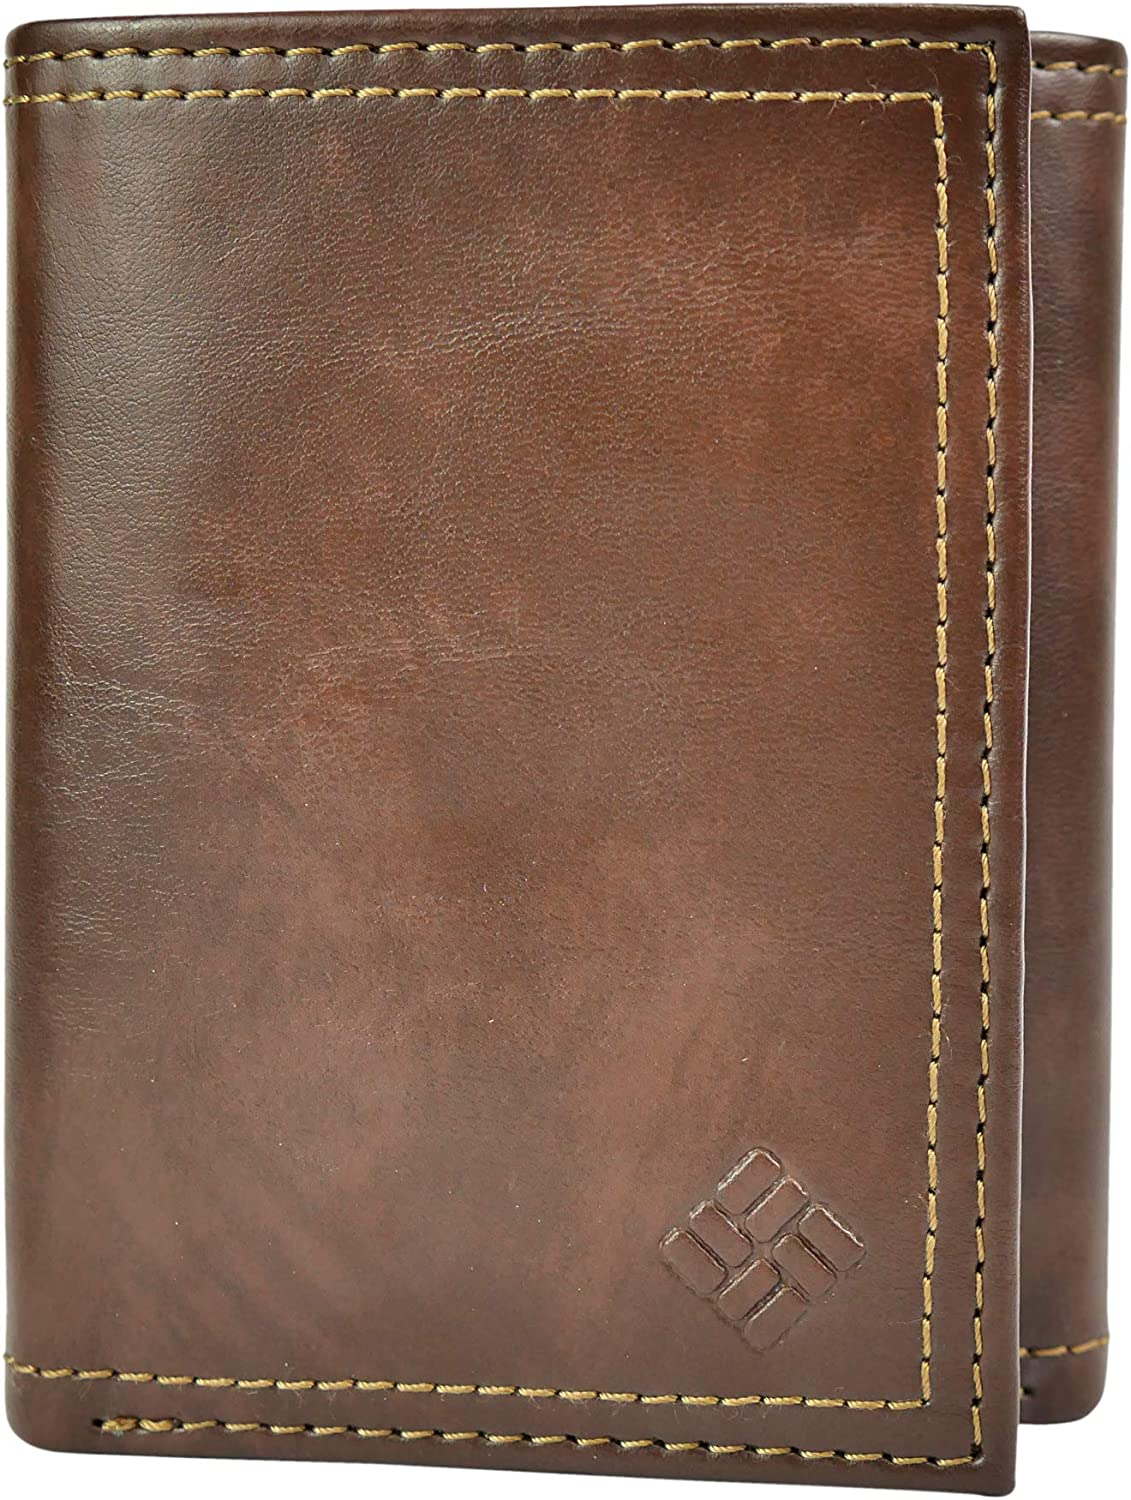 Columbia Mens RFID Blocking Leather Slim Trifold Wallet